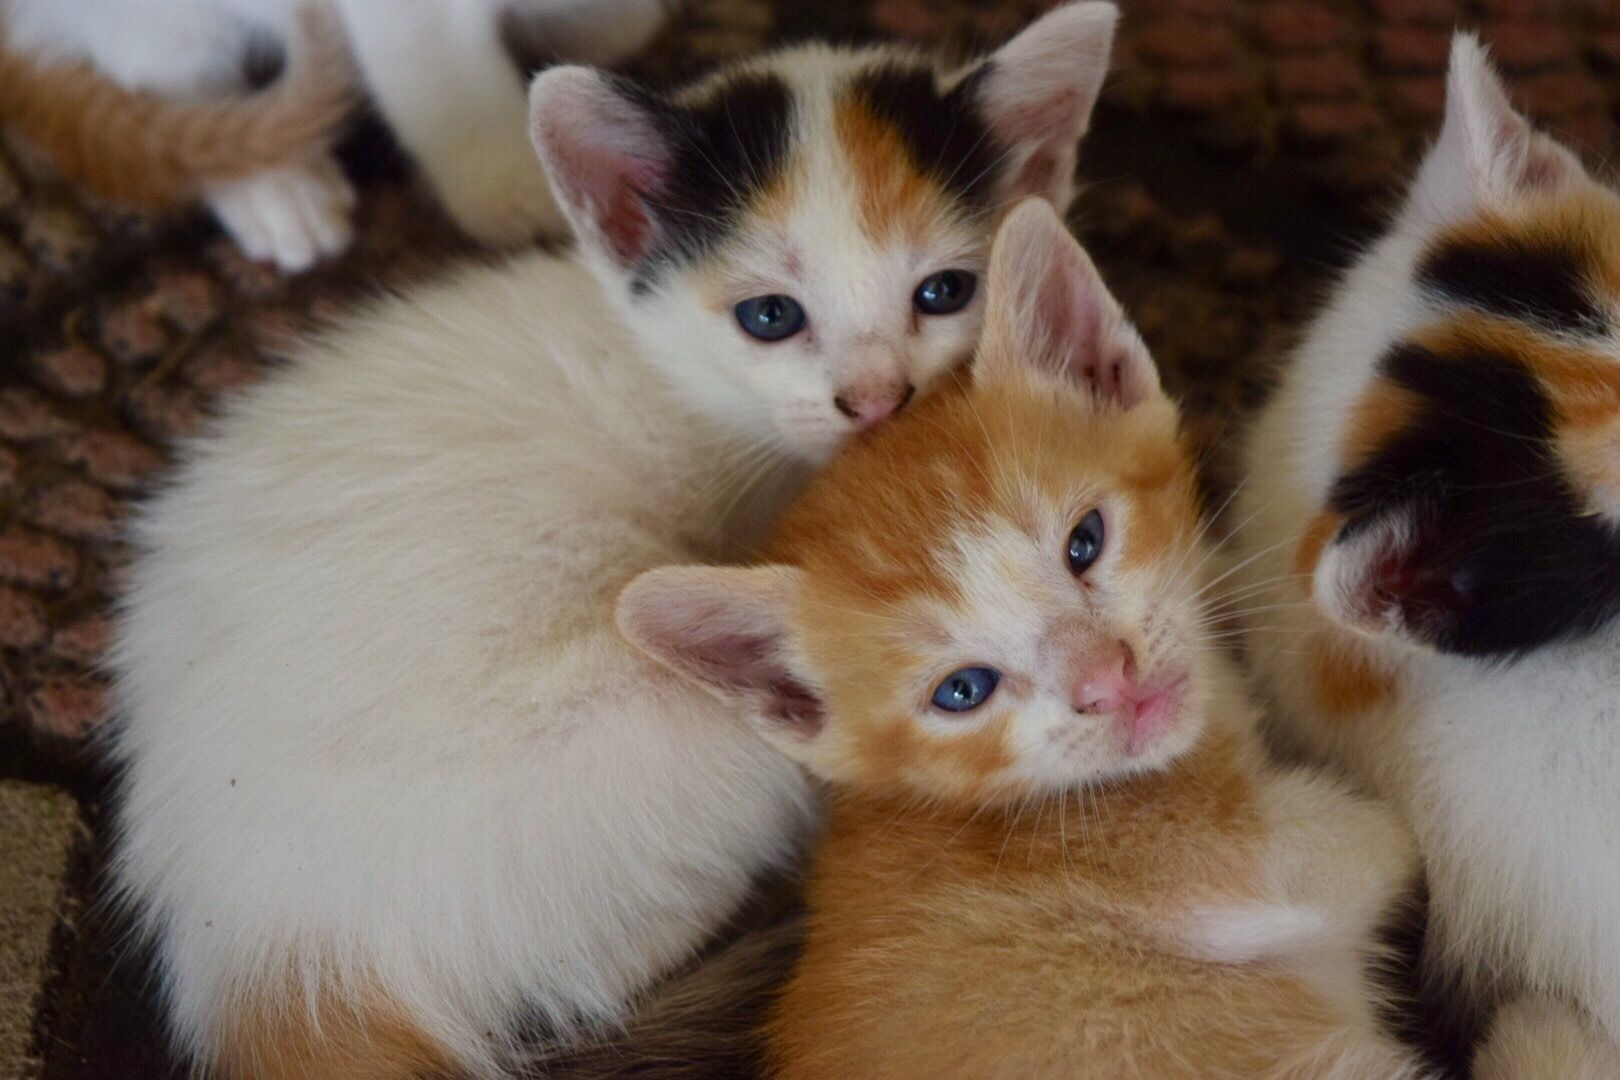 Save A Life Foster Adopt Rescue Louisiana Kitten Foster Adopt Rescue Calico Babycat Cat Ffr Savethemall Kittens Cats Animals